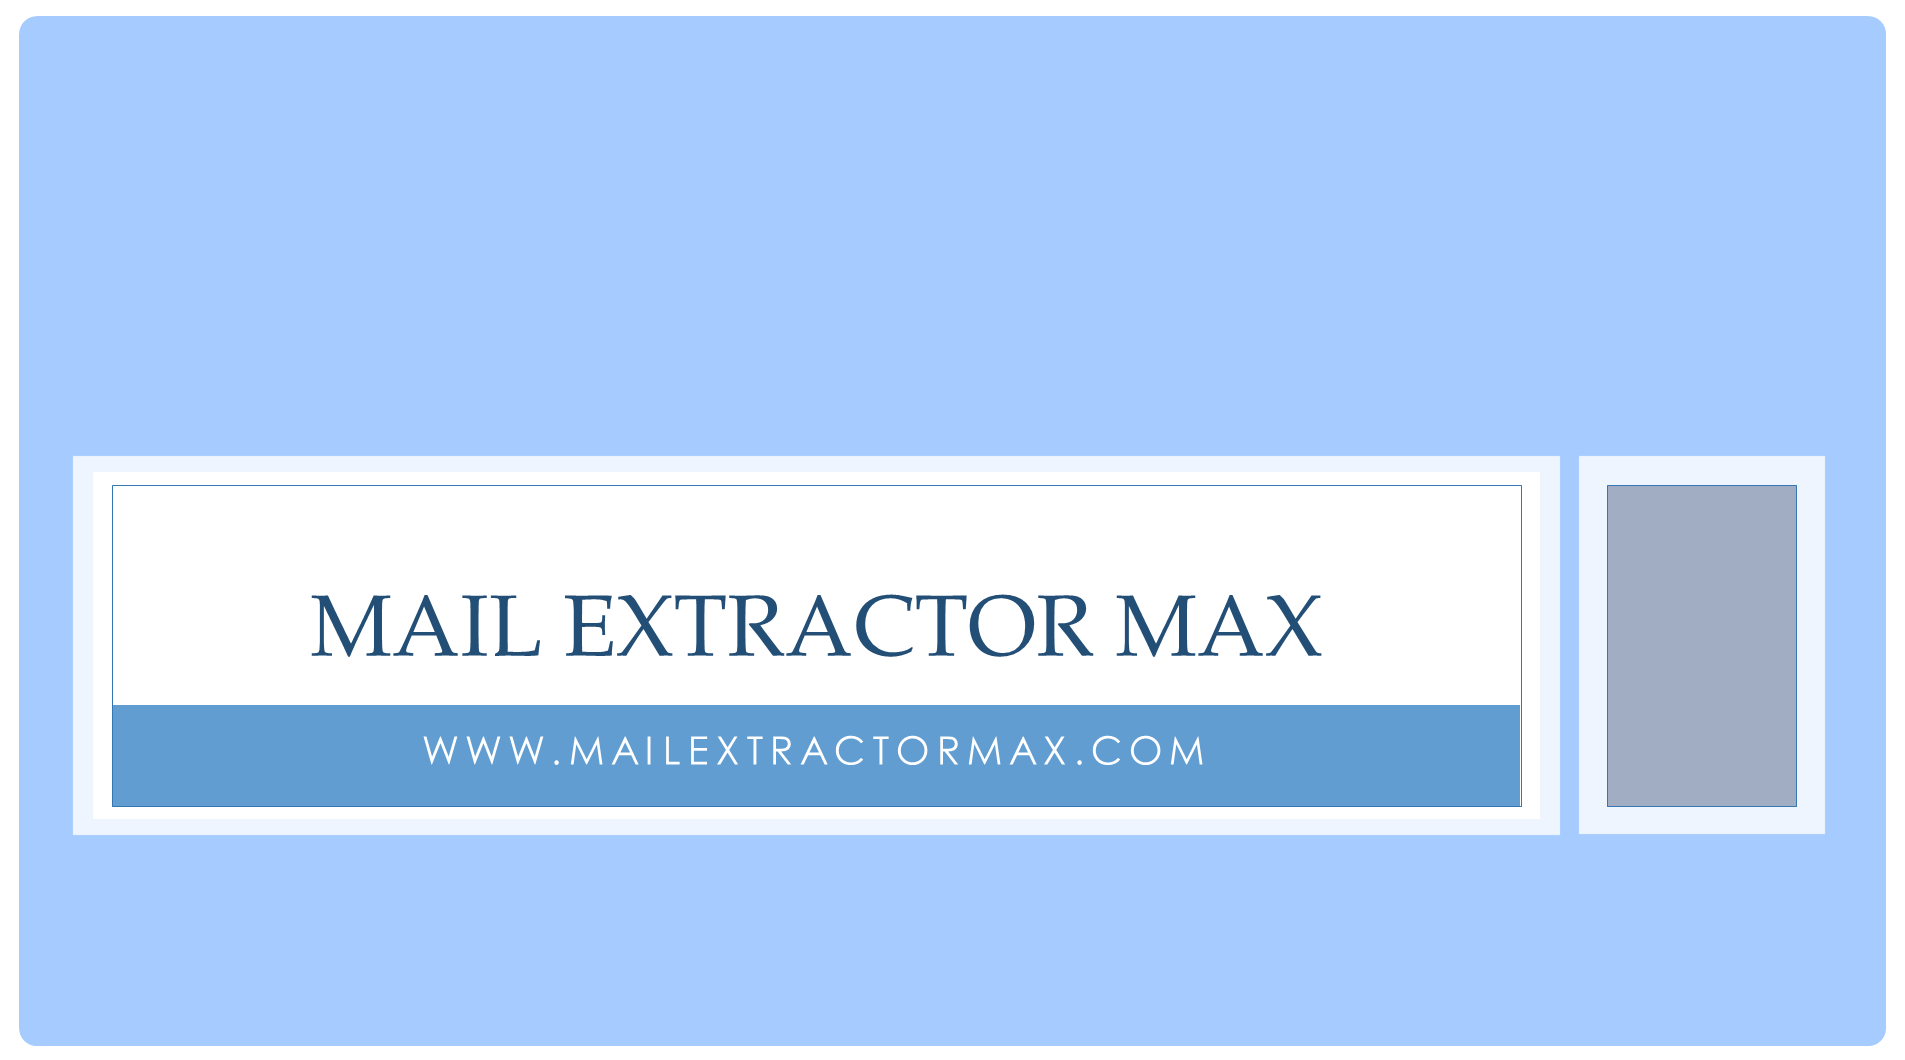 Mac Mail to Postbox Converter to go for: Mail Extractor Max